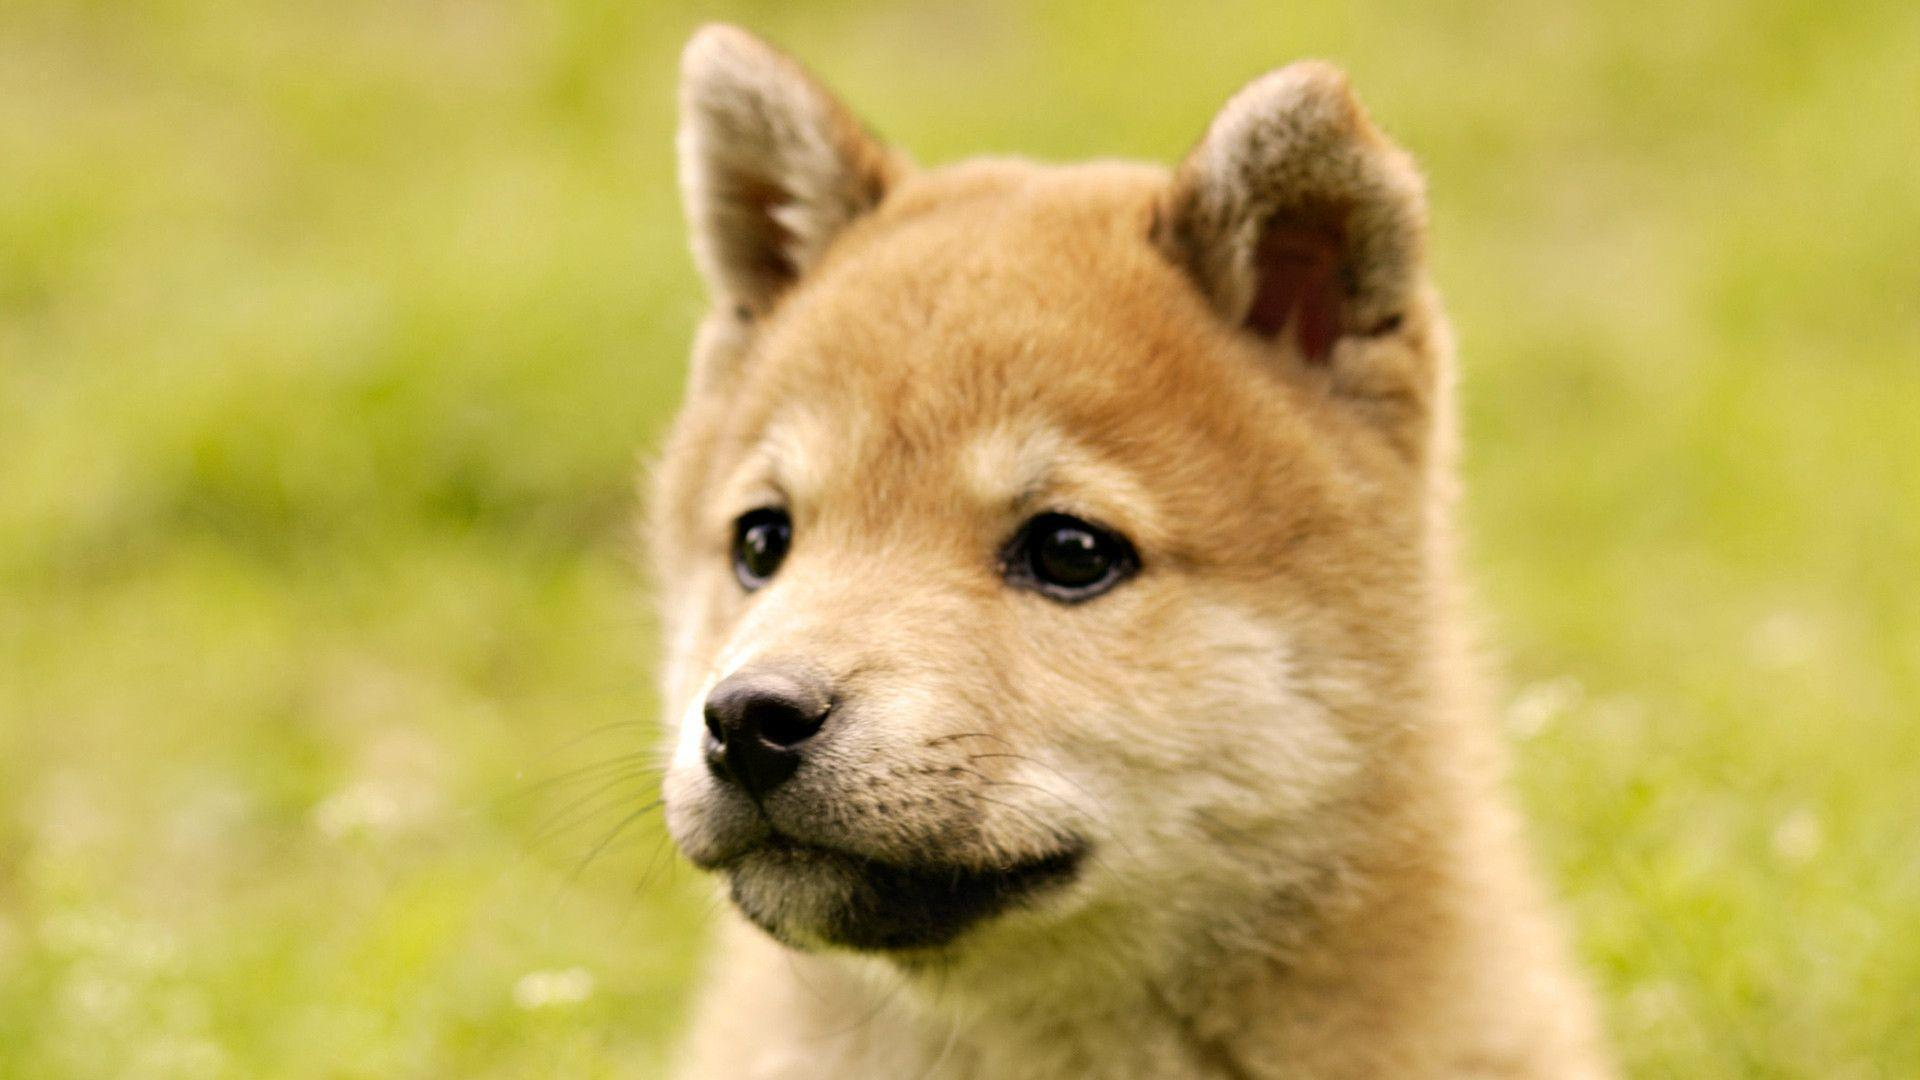 baby and shiba inu wallpaper - photo #9